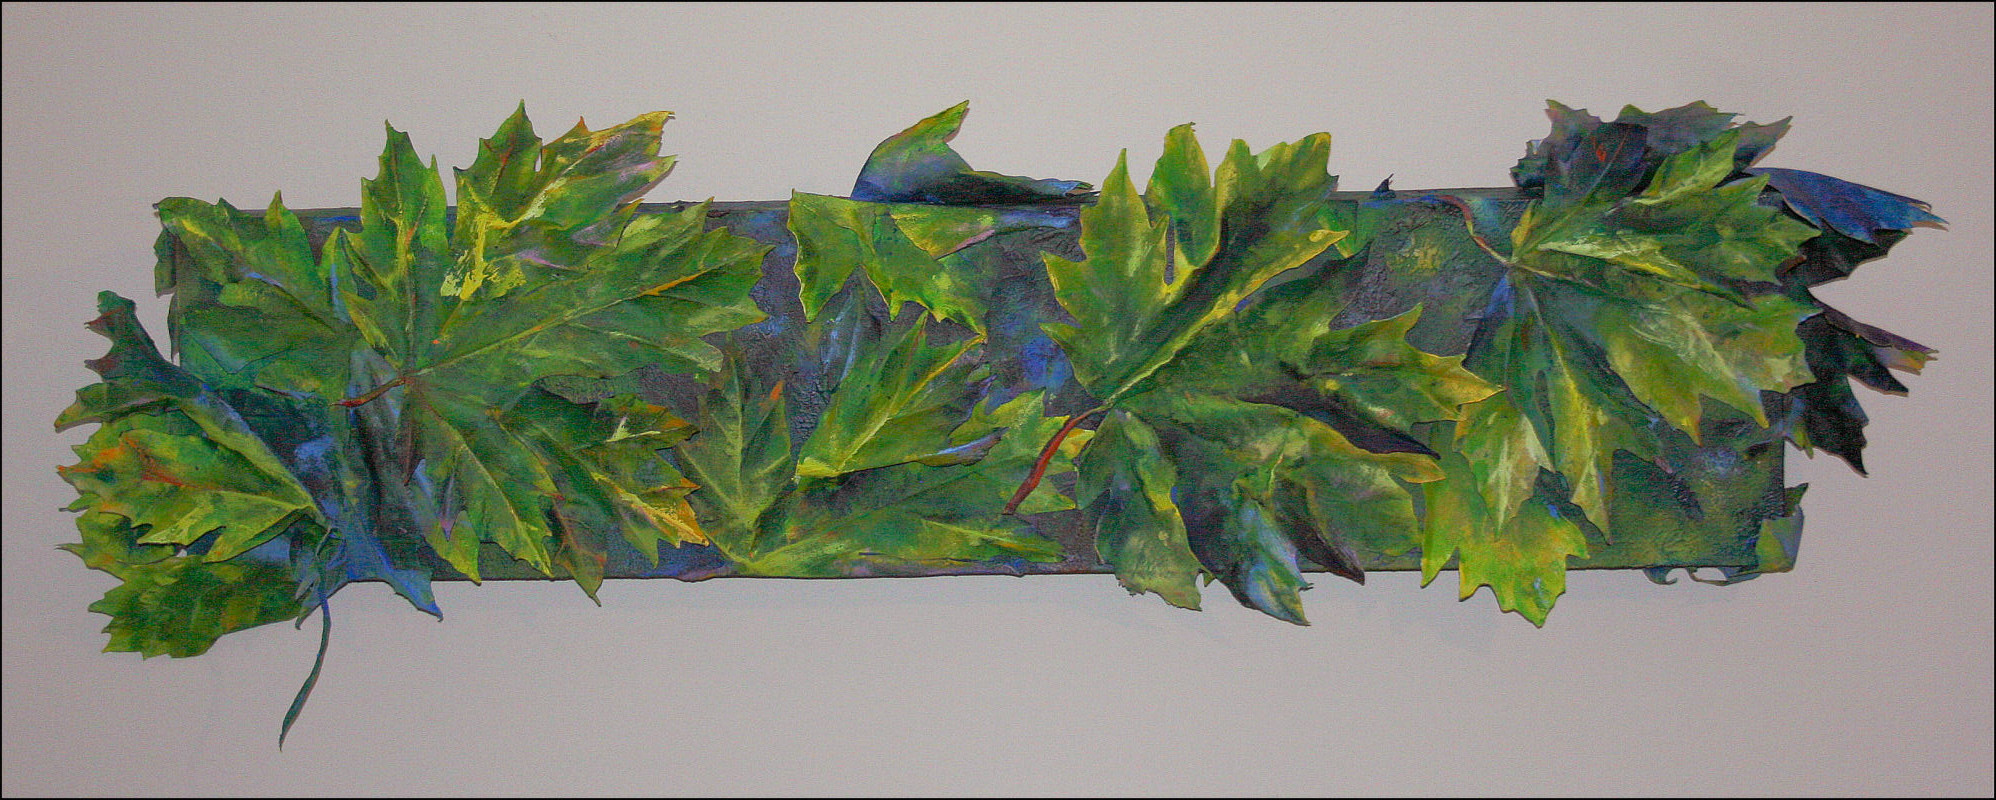 What Bigleaf Maples Do At Night - day look - 57H x 20W x 4D inches acrylics on canvas, wrapped sides painted, LED light system, 12V rechargeable battery